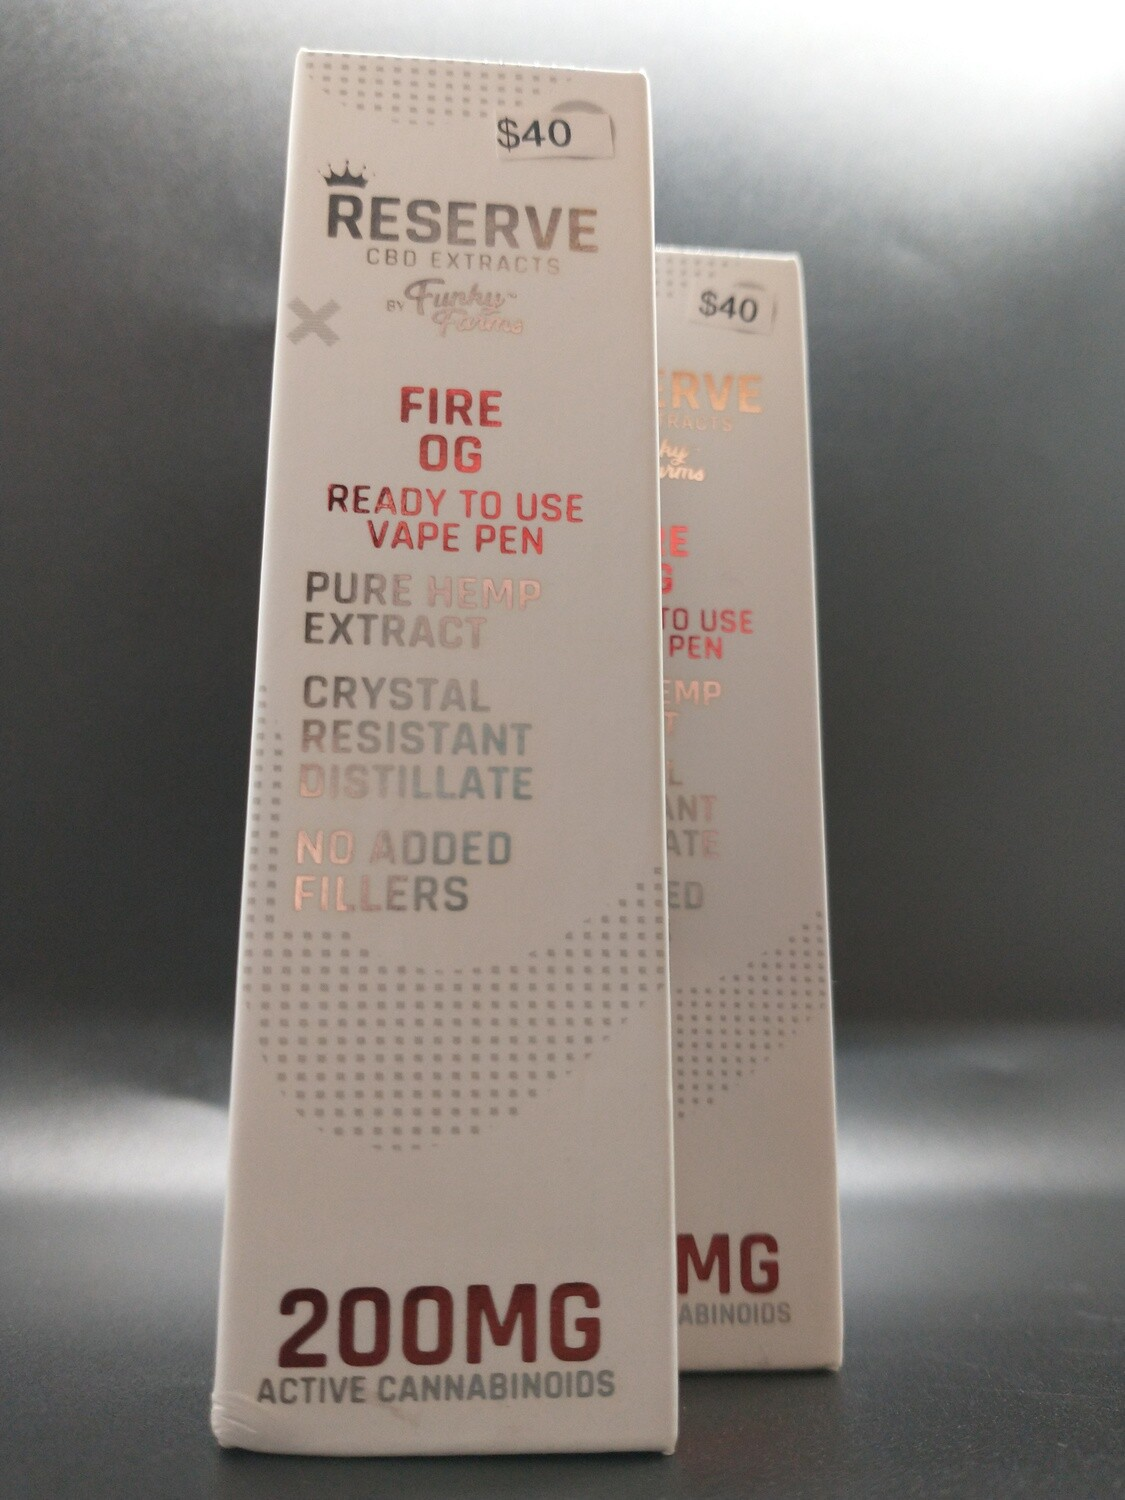 Reserve Funky Farms Fire OG 200mg Disposable